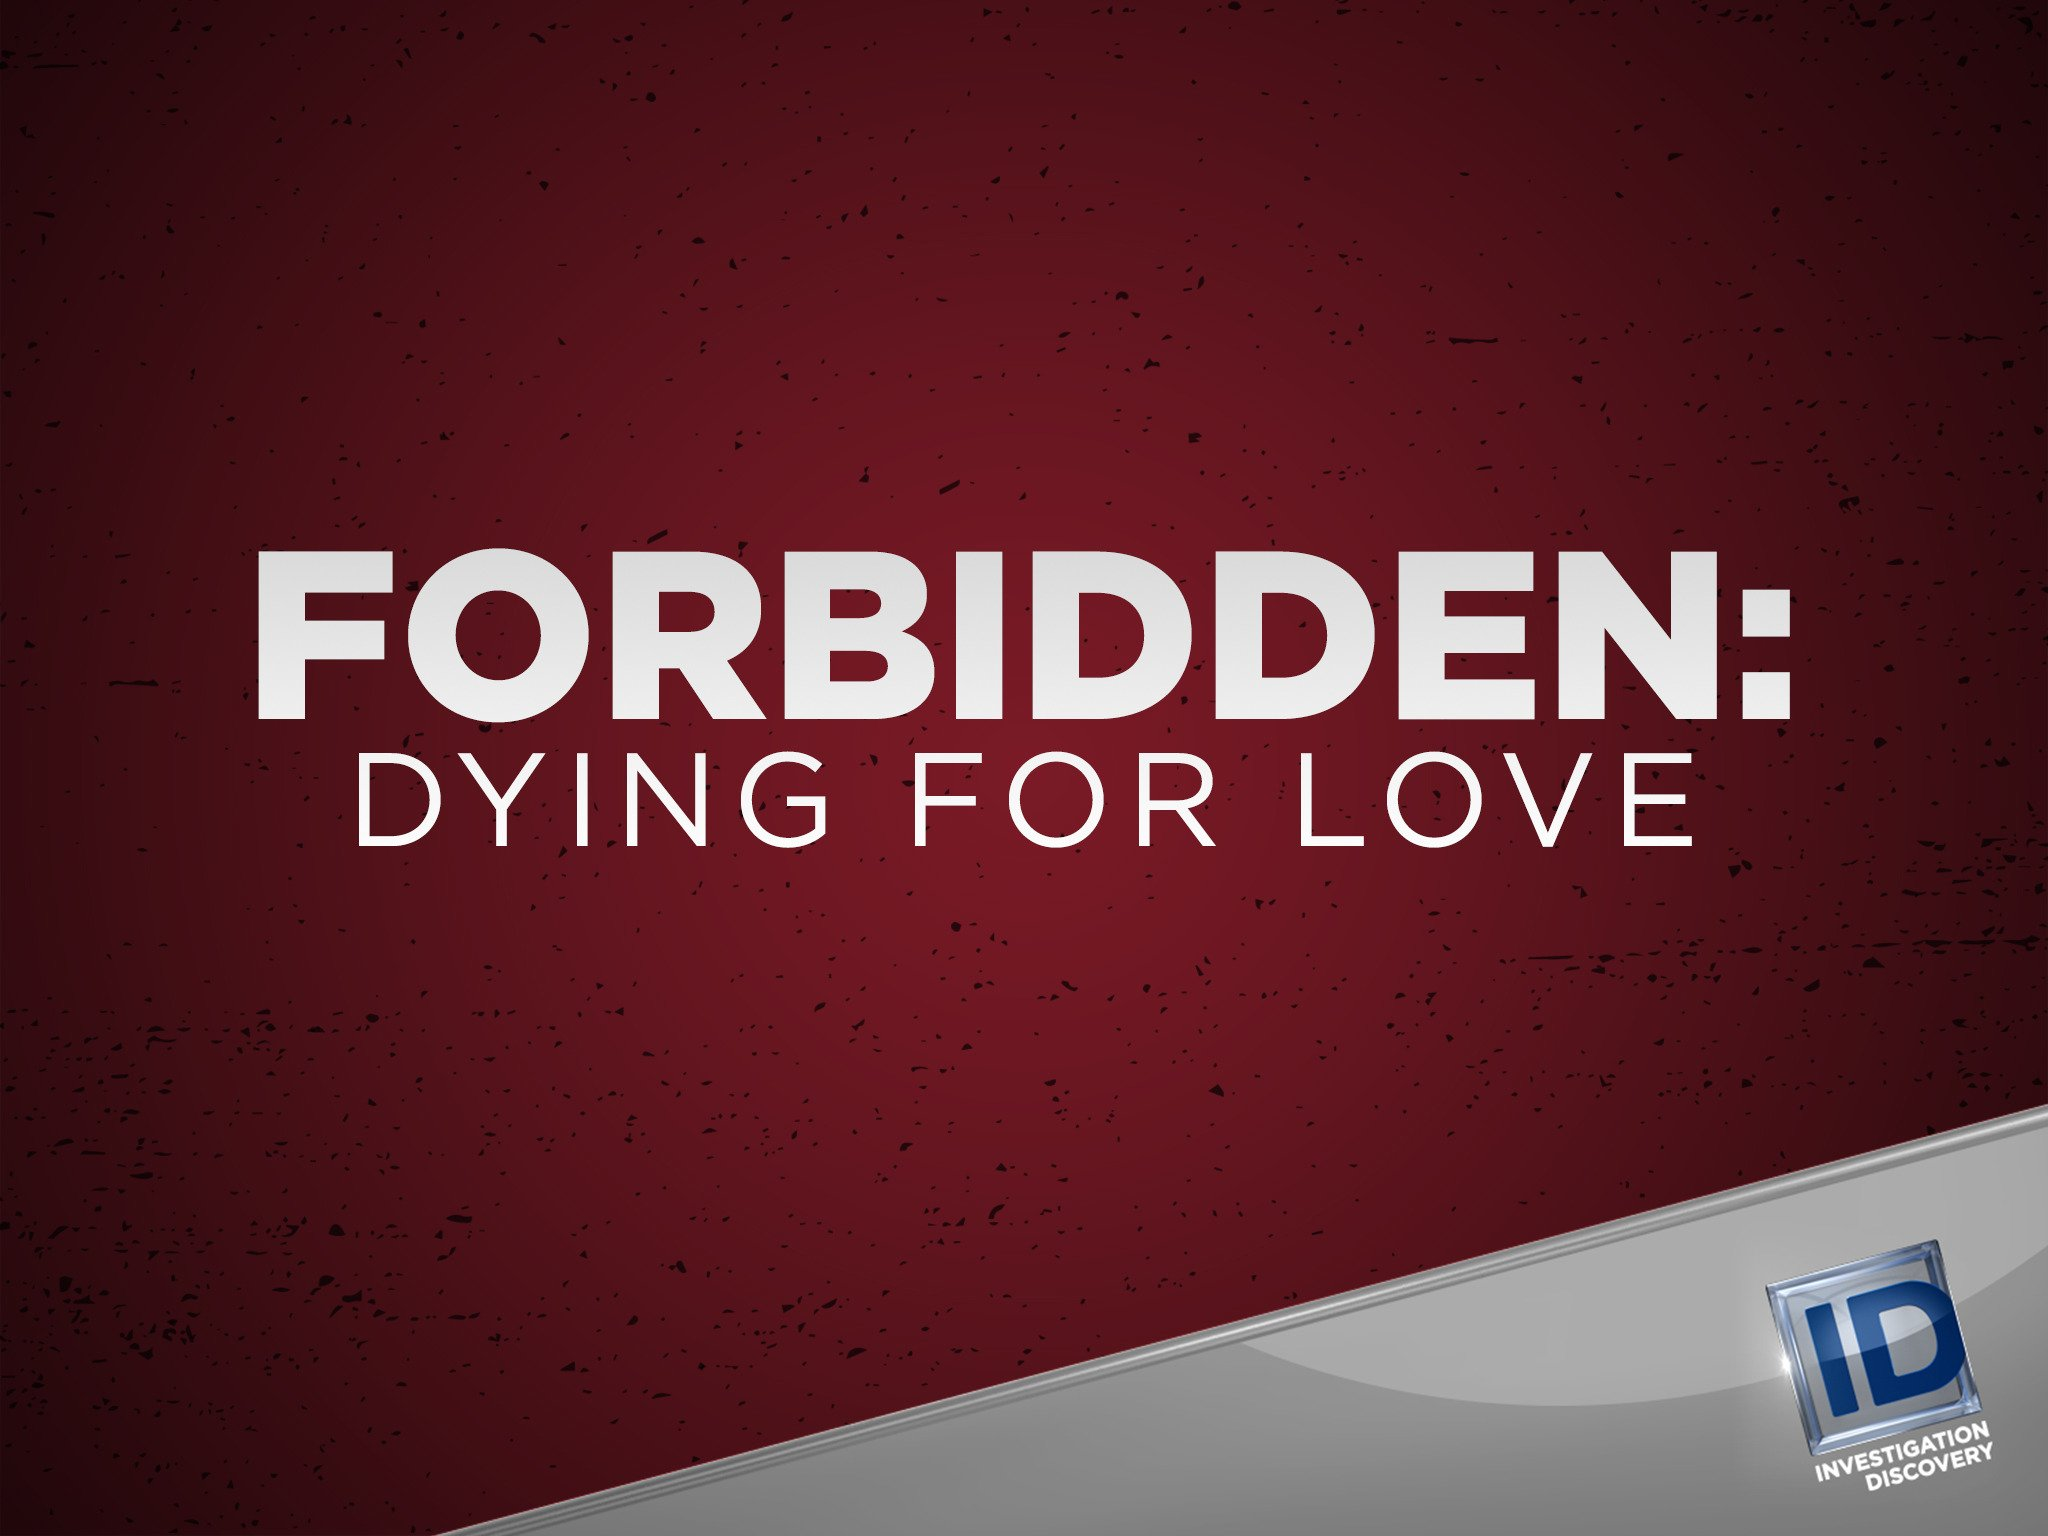 Forbidden Dying for Love